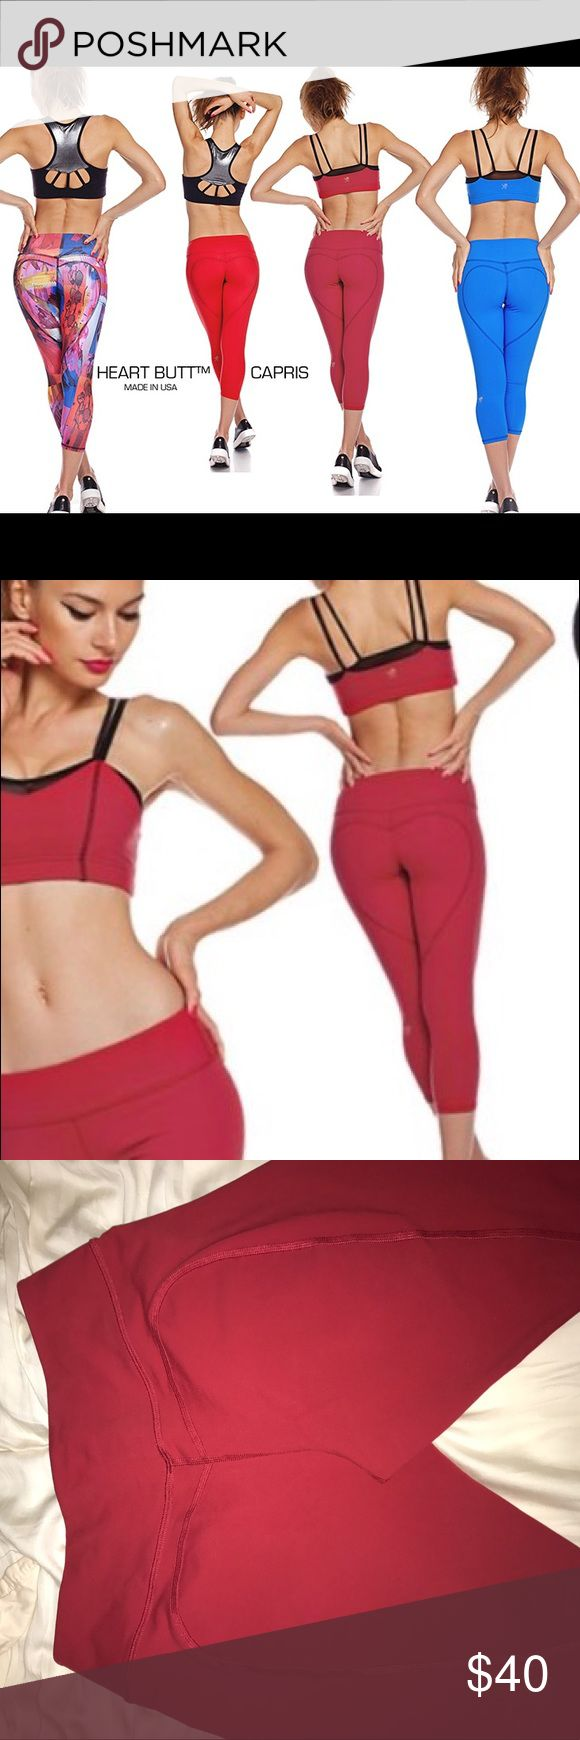 Nina b roze red leggings. Never worn Only tried on Red heart butt work out capris style #8007 never worn. Pants Capris